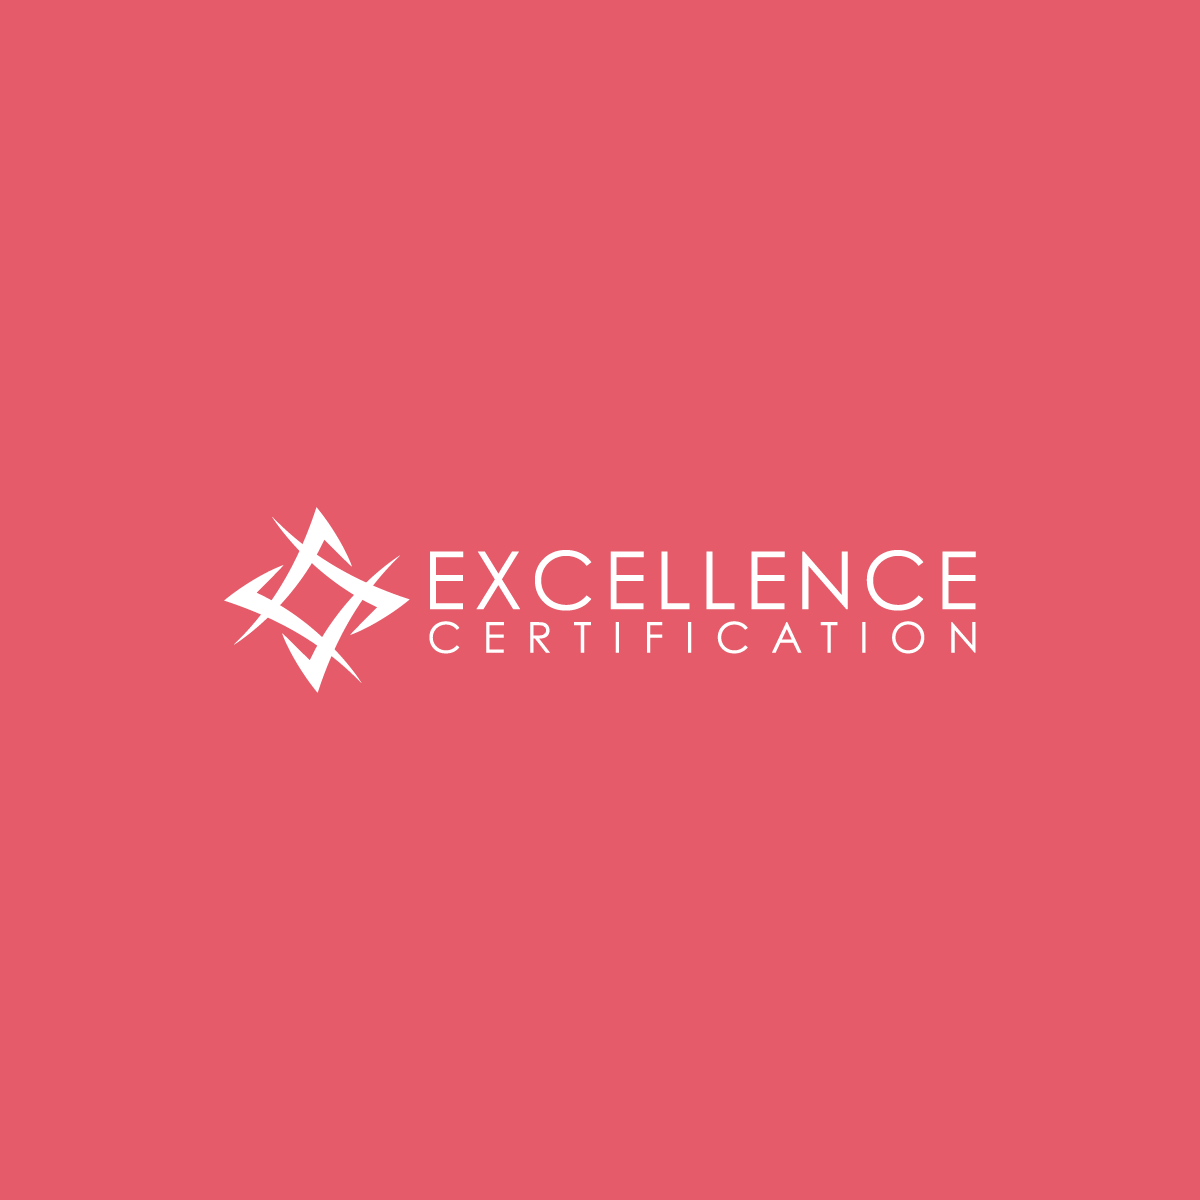 Excellence Certification